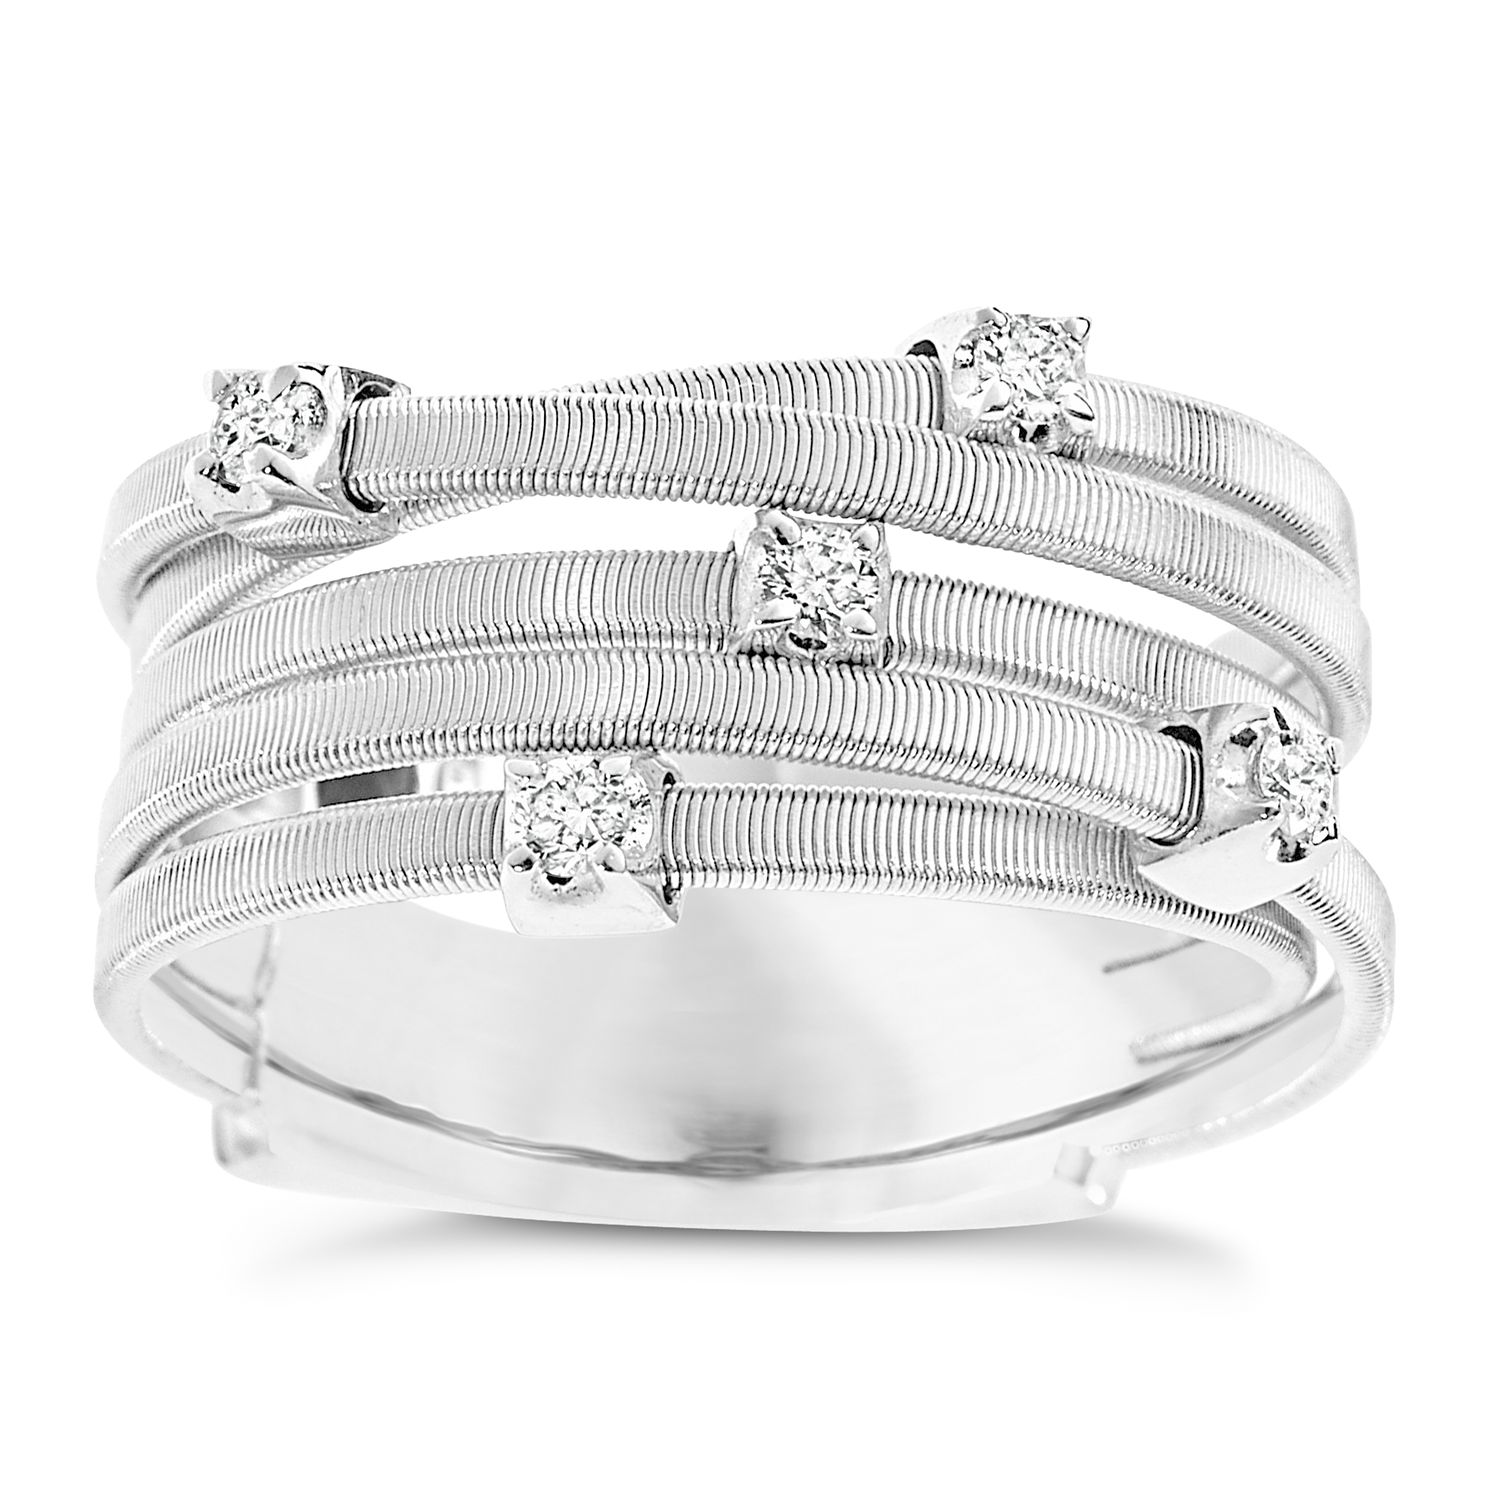 Marco Bicego 18ct White Gold Five Row 0.15ct Diamond Ring - Product number 9096388